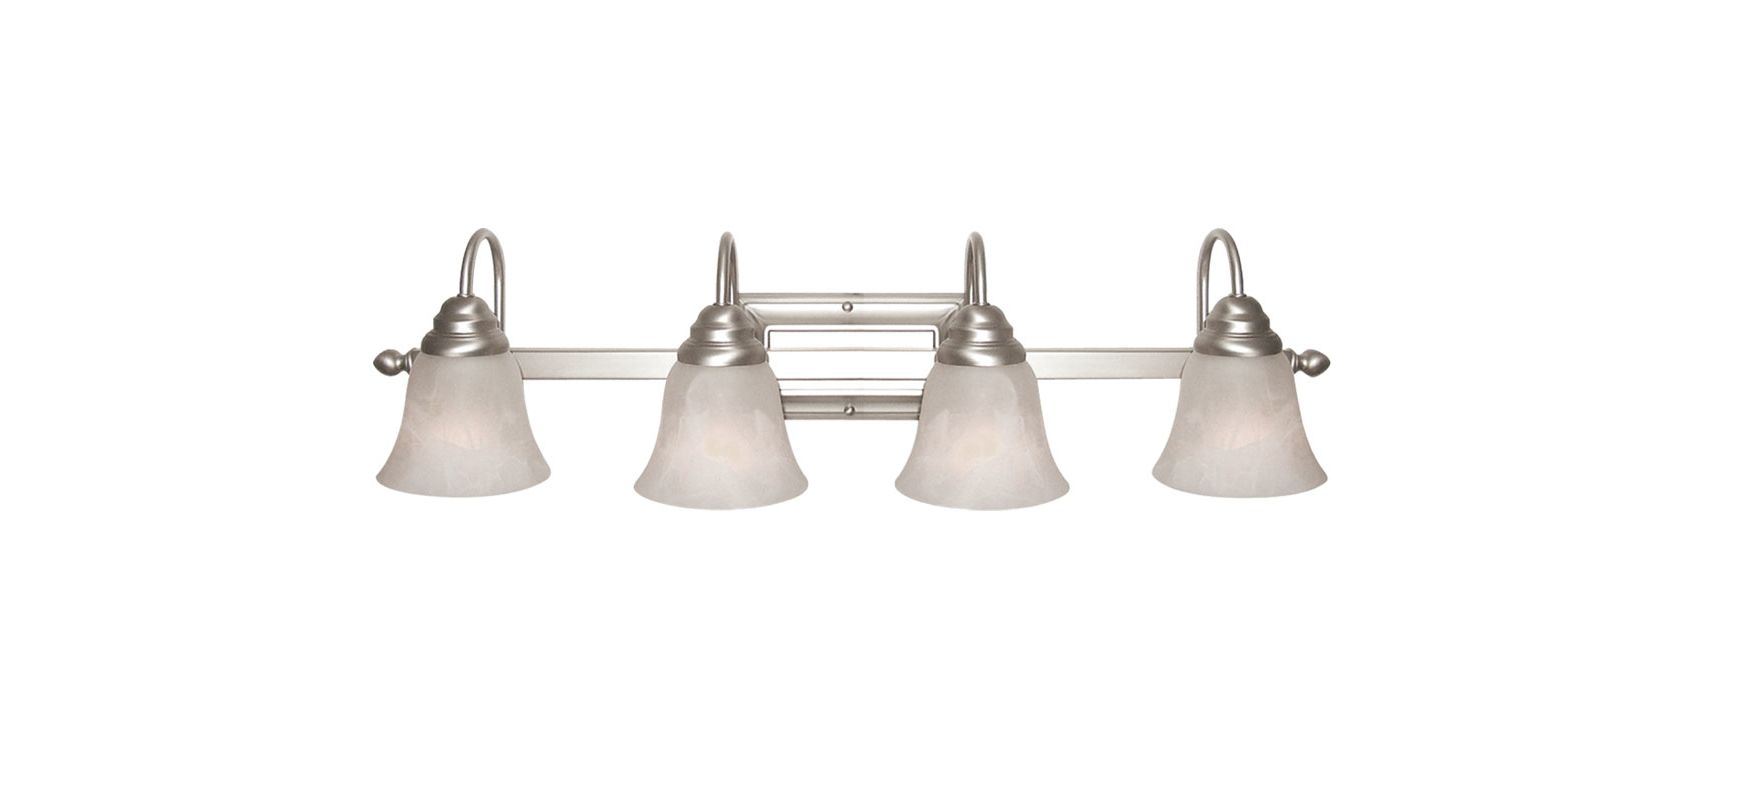 Woodbridge Lighting 50021 Basic 4 Light Satin Nickel Vanity Light Sale $123.52 ITEM: bci2195856 ID#:50021-STN :